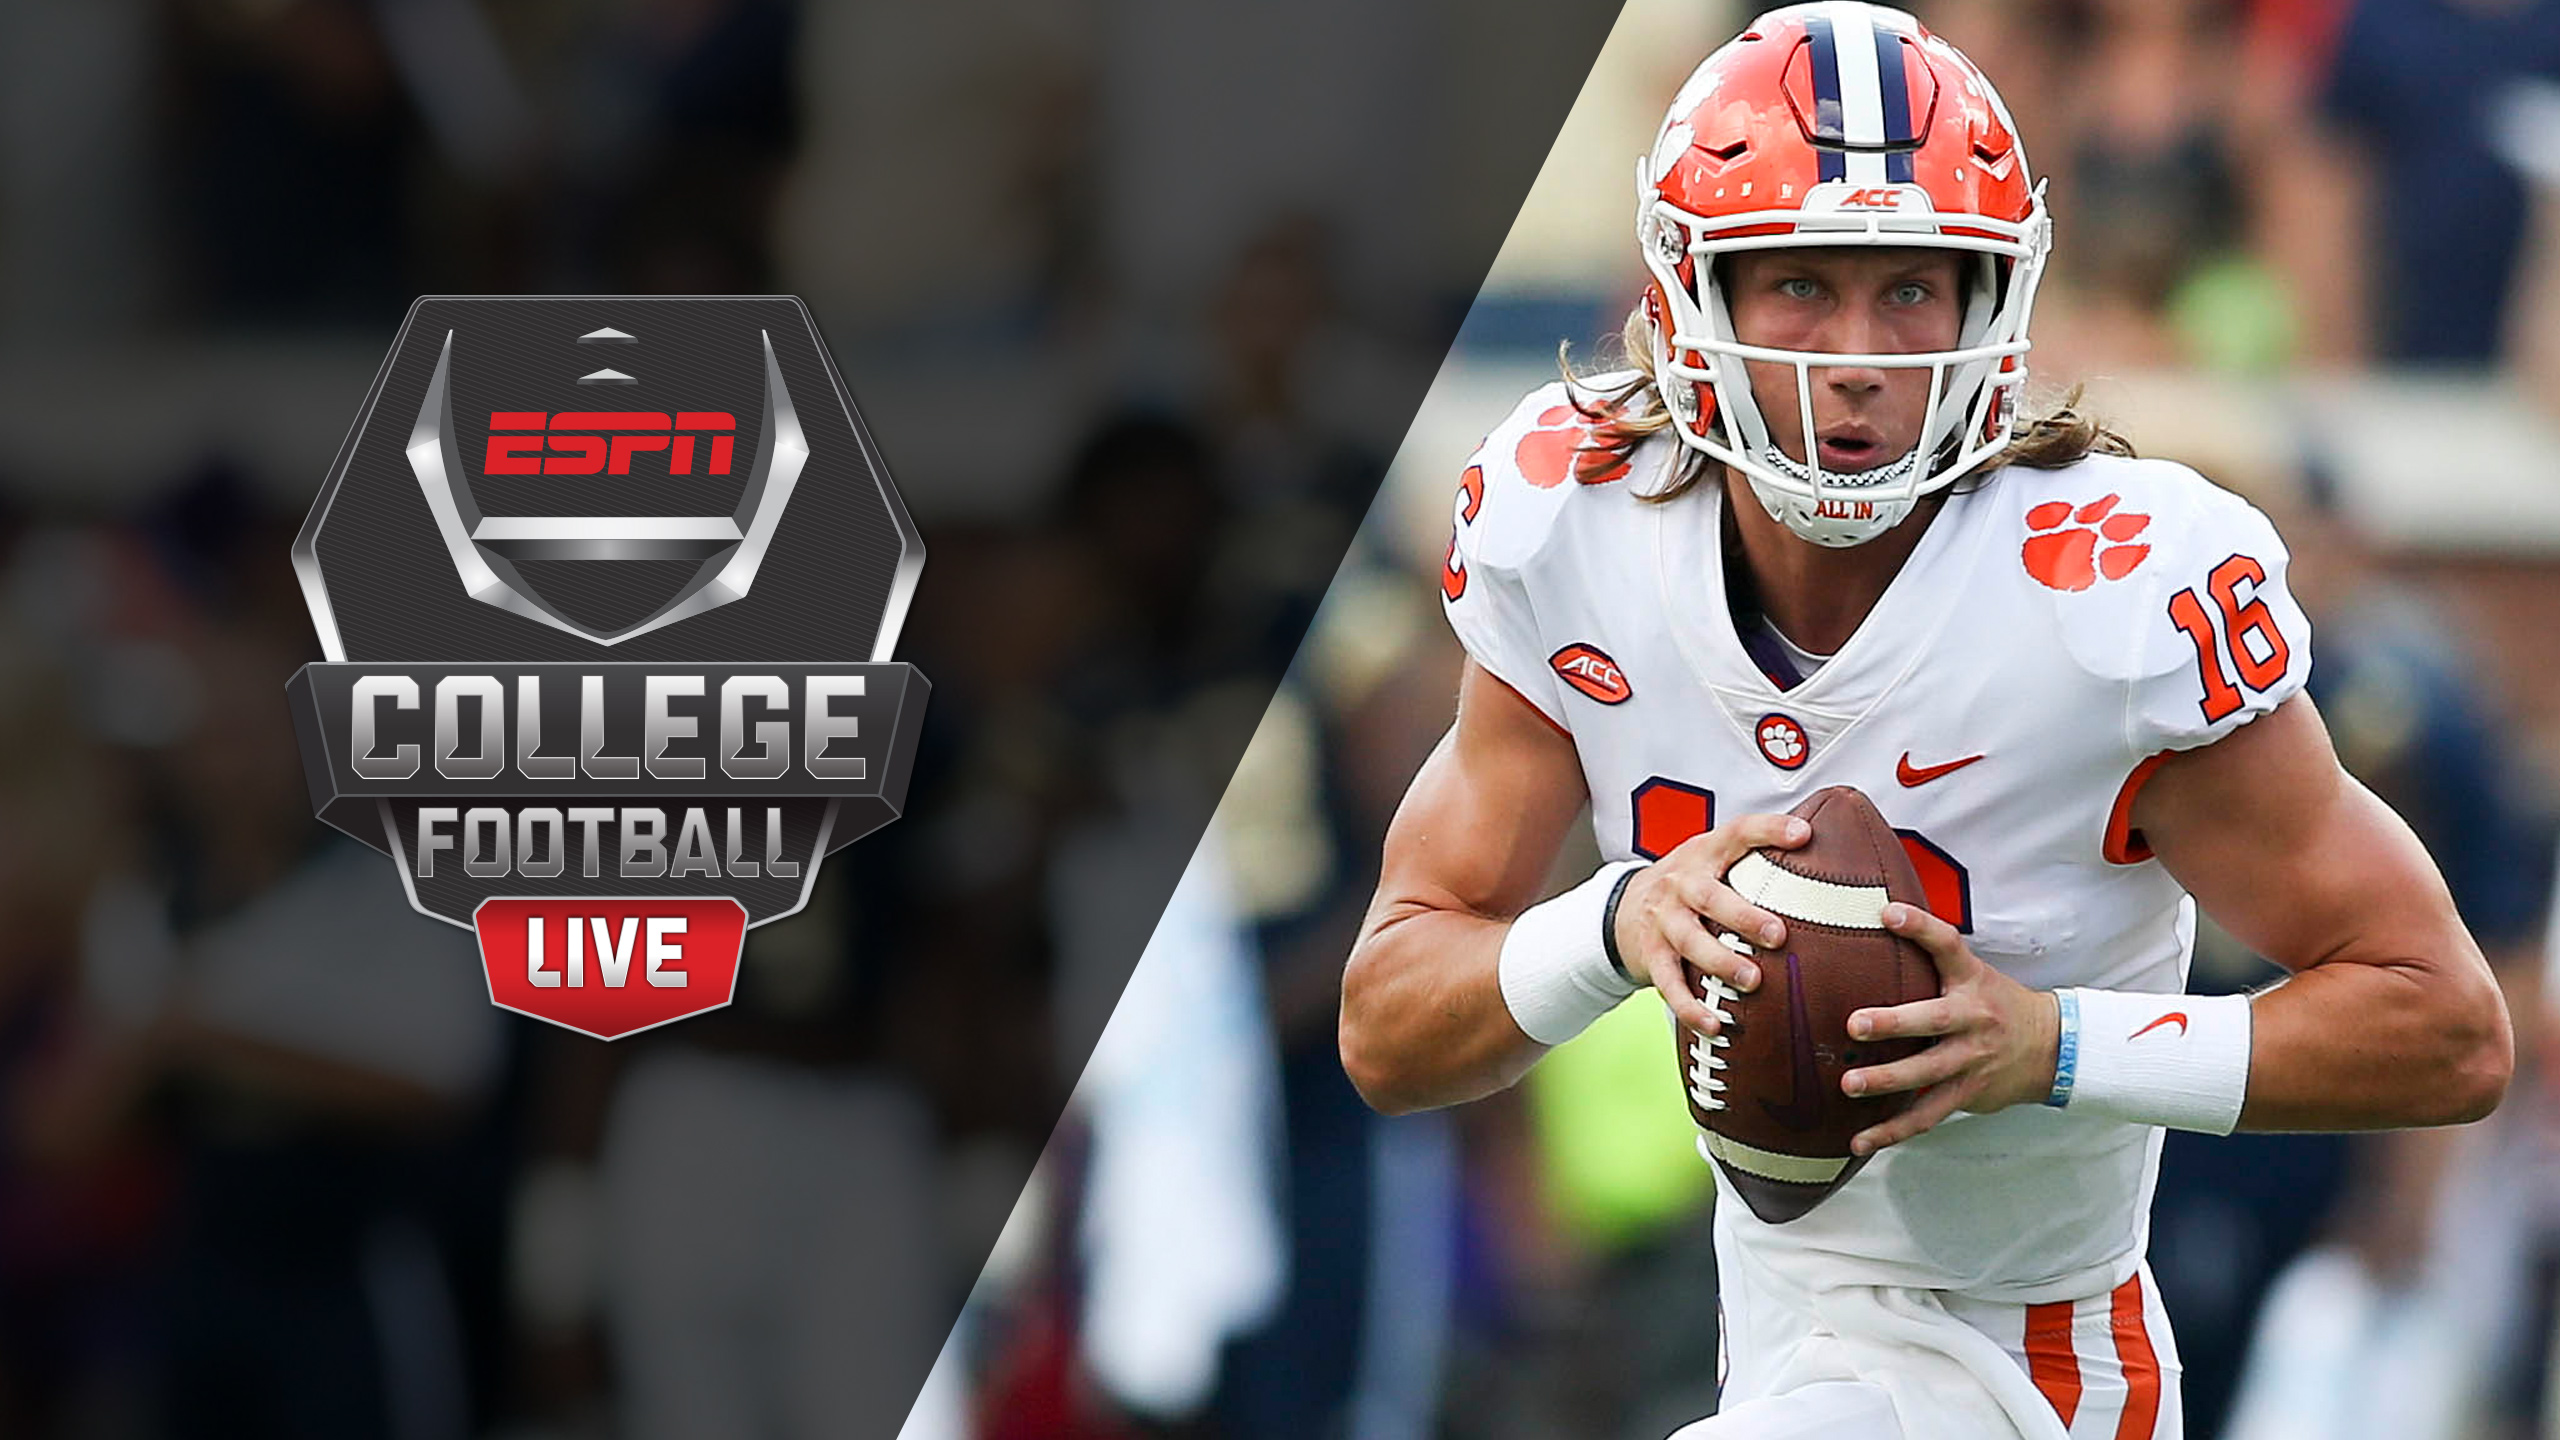 Mon, 9/24 - College Football Live Presented by ZipRecruiter